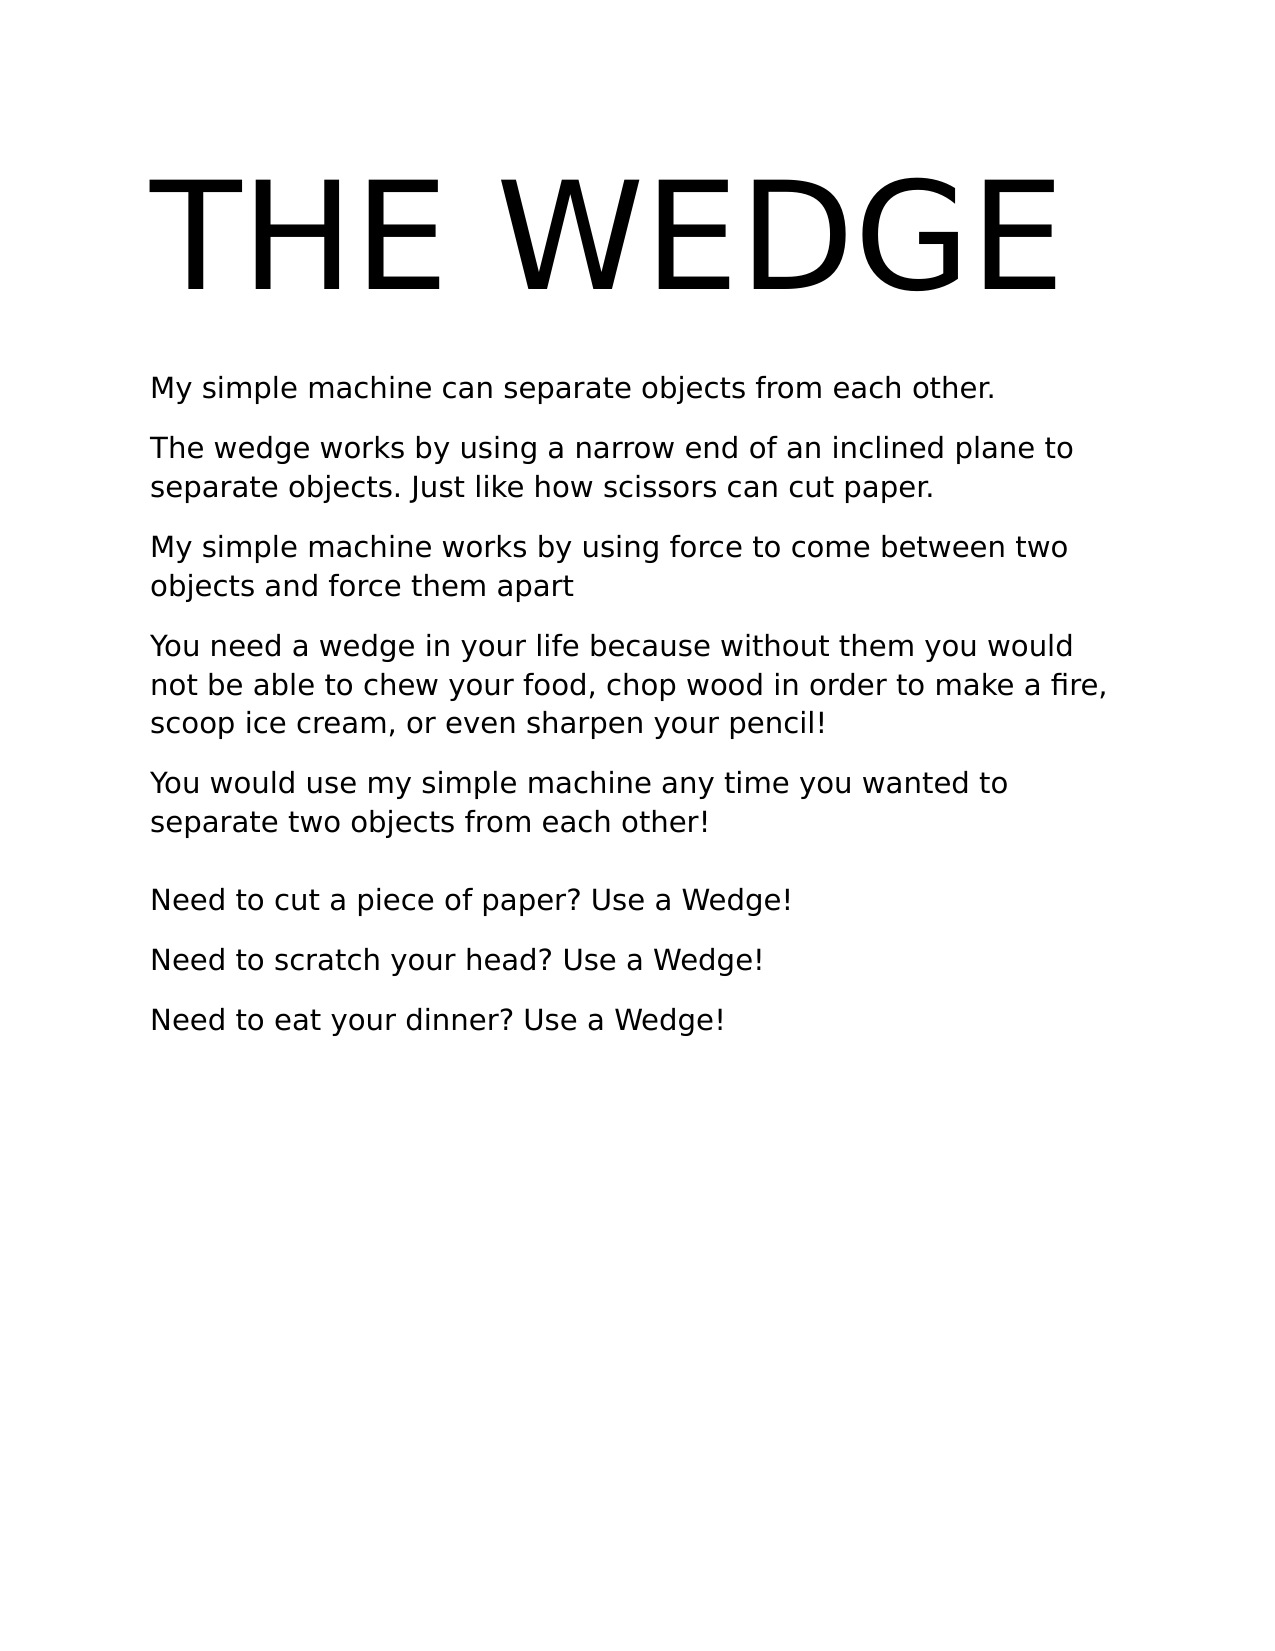 Wedges Information Poster By Mssherlock Ninja Plans